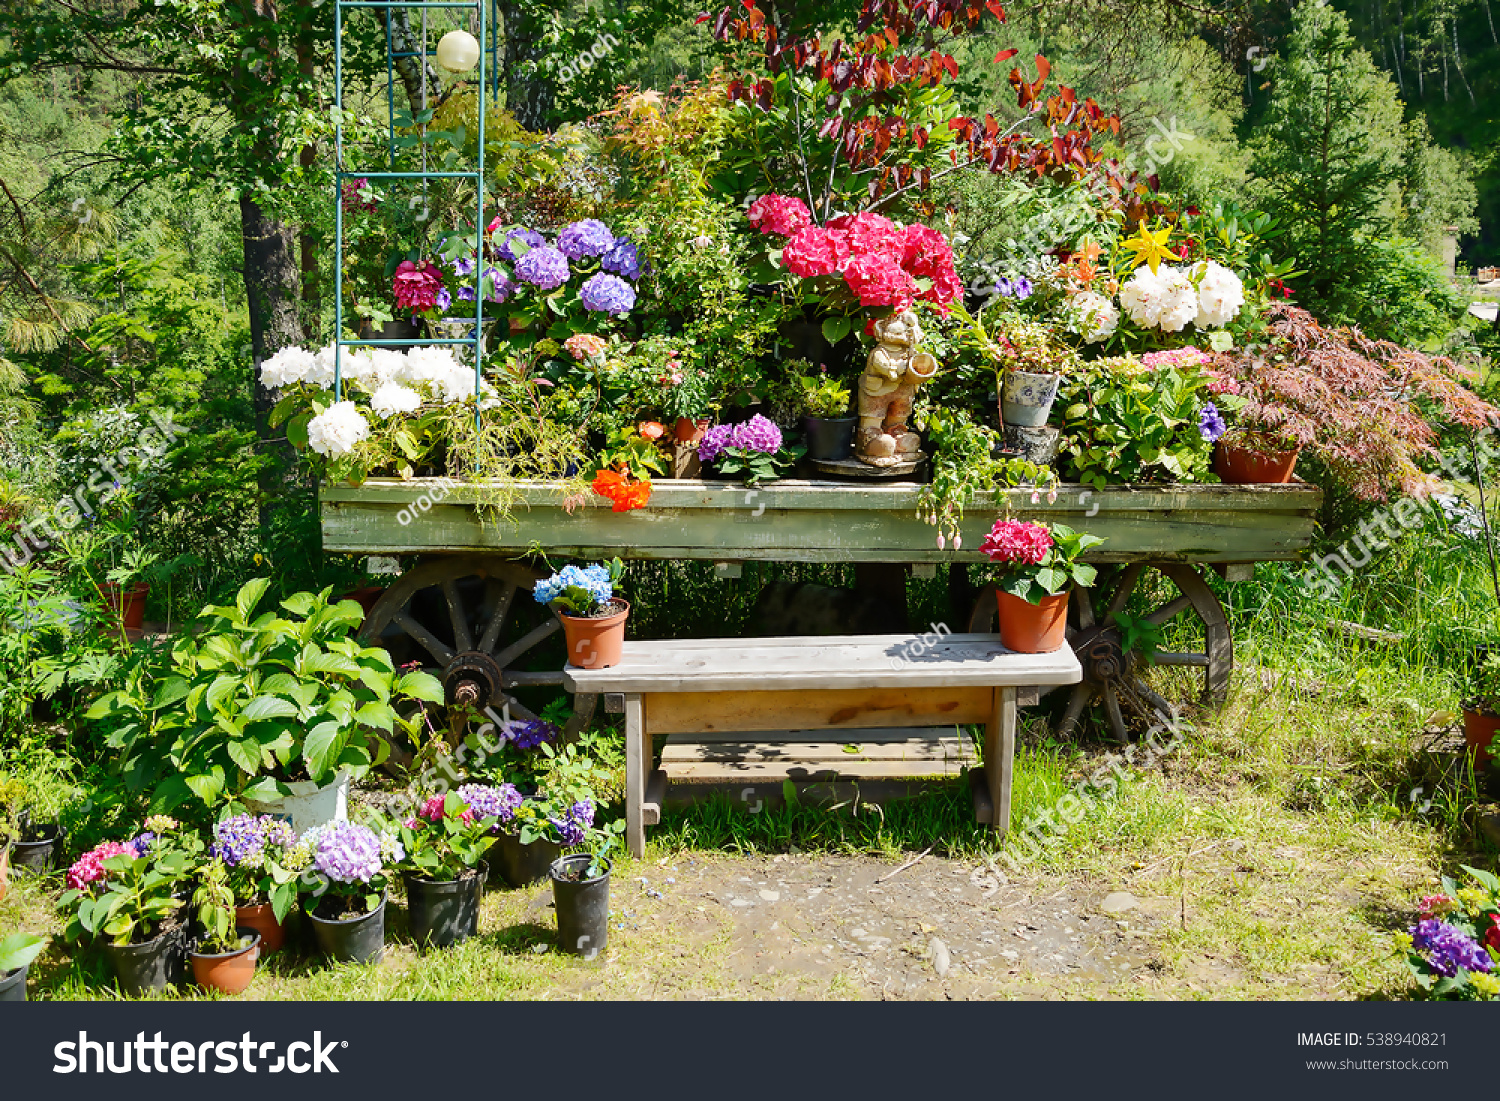 Decorative Garden Bench Decorated Flowers Pots Stock Photo 538940821 ...